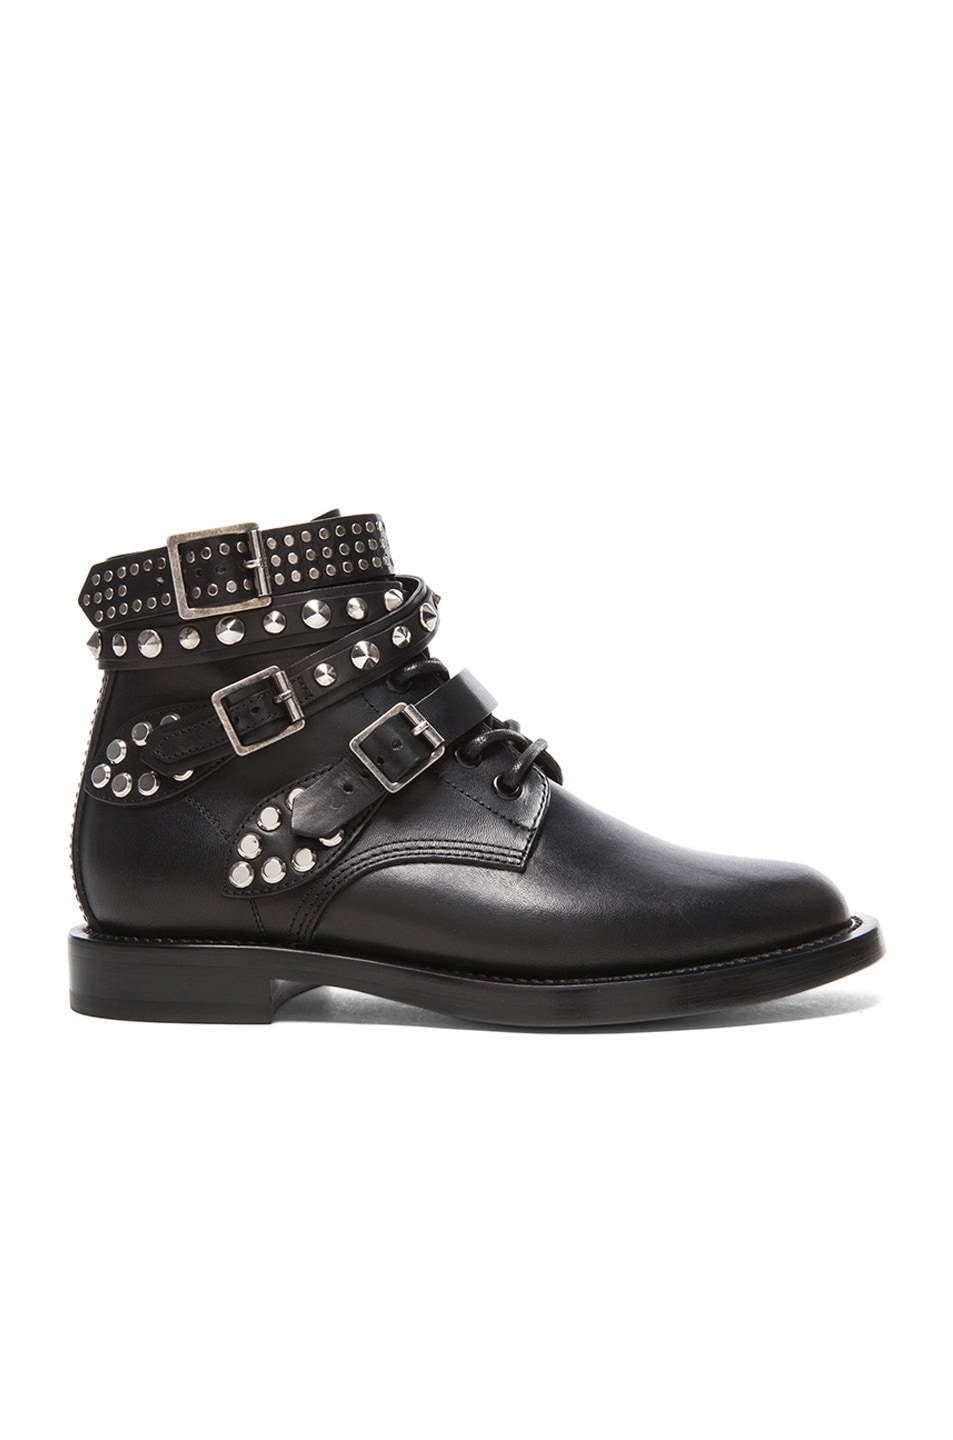 Saint Laurent Rangers Studded Low Combat Boots in Black | FWRD